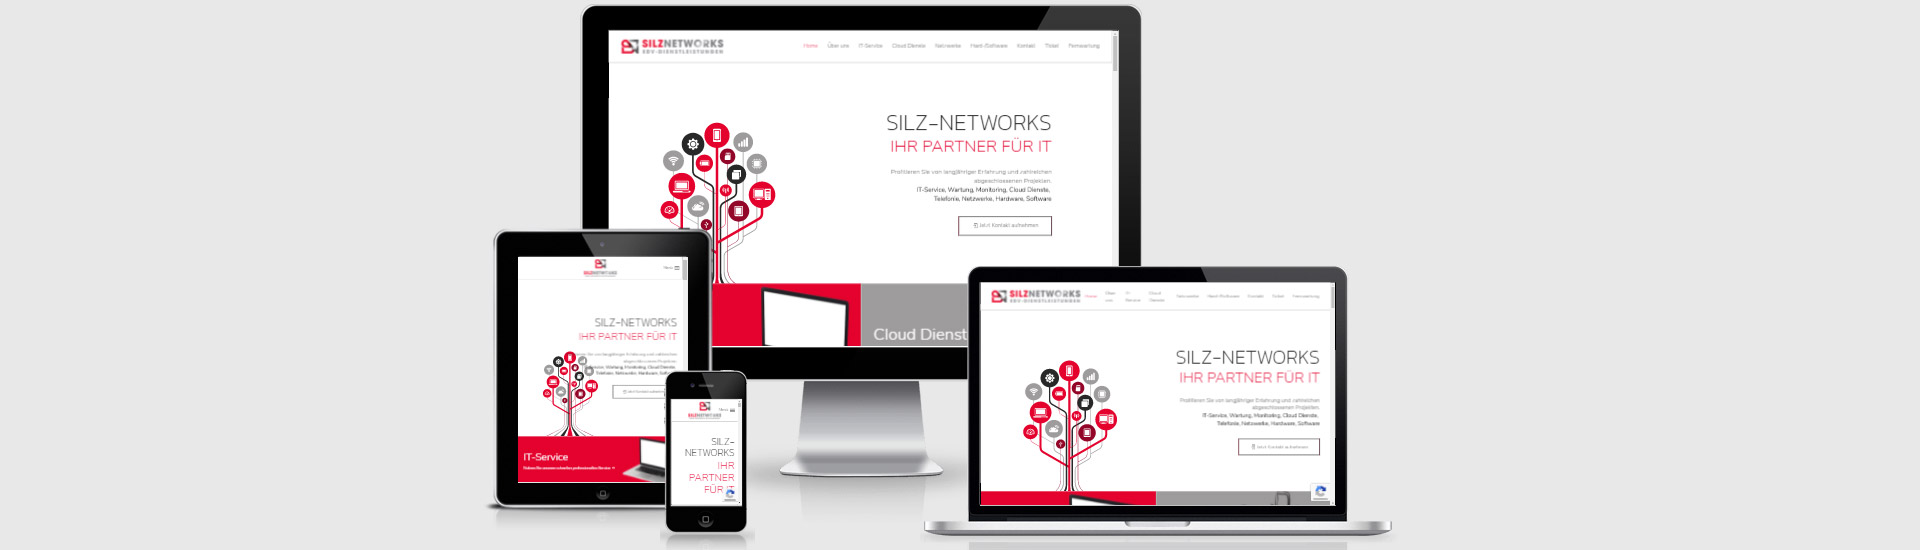 webdesign dieburg silz networks header01